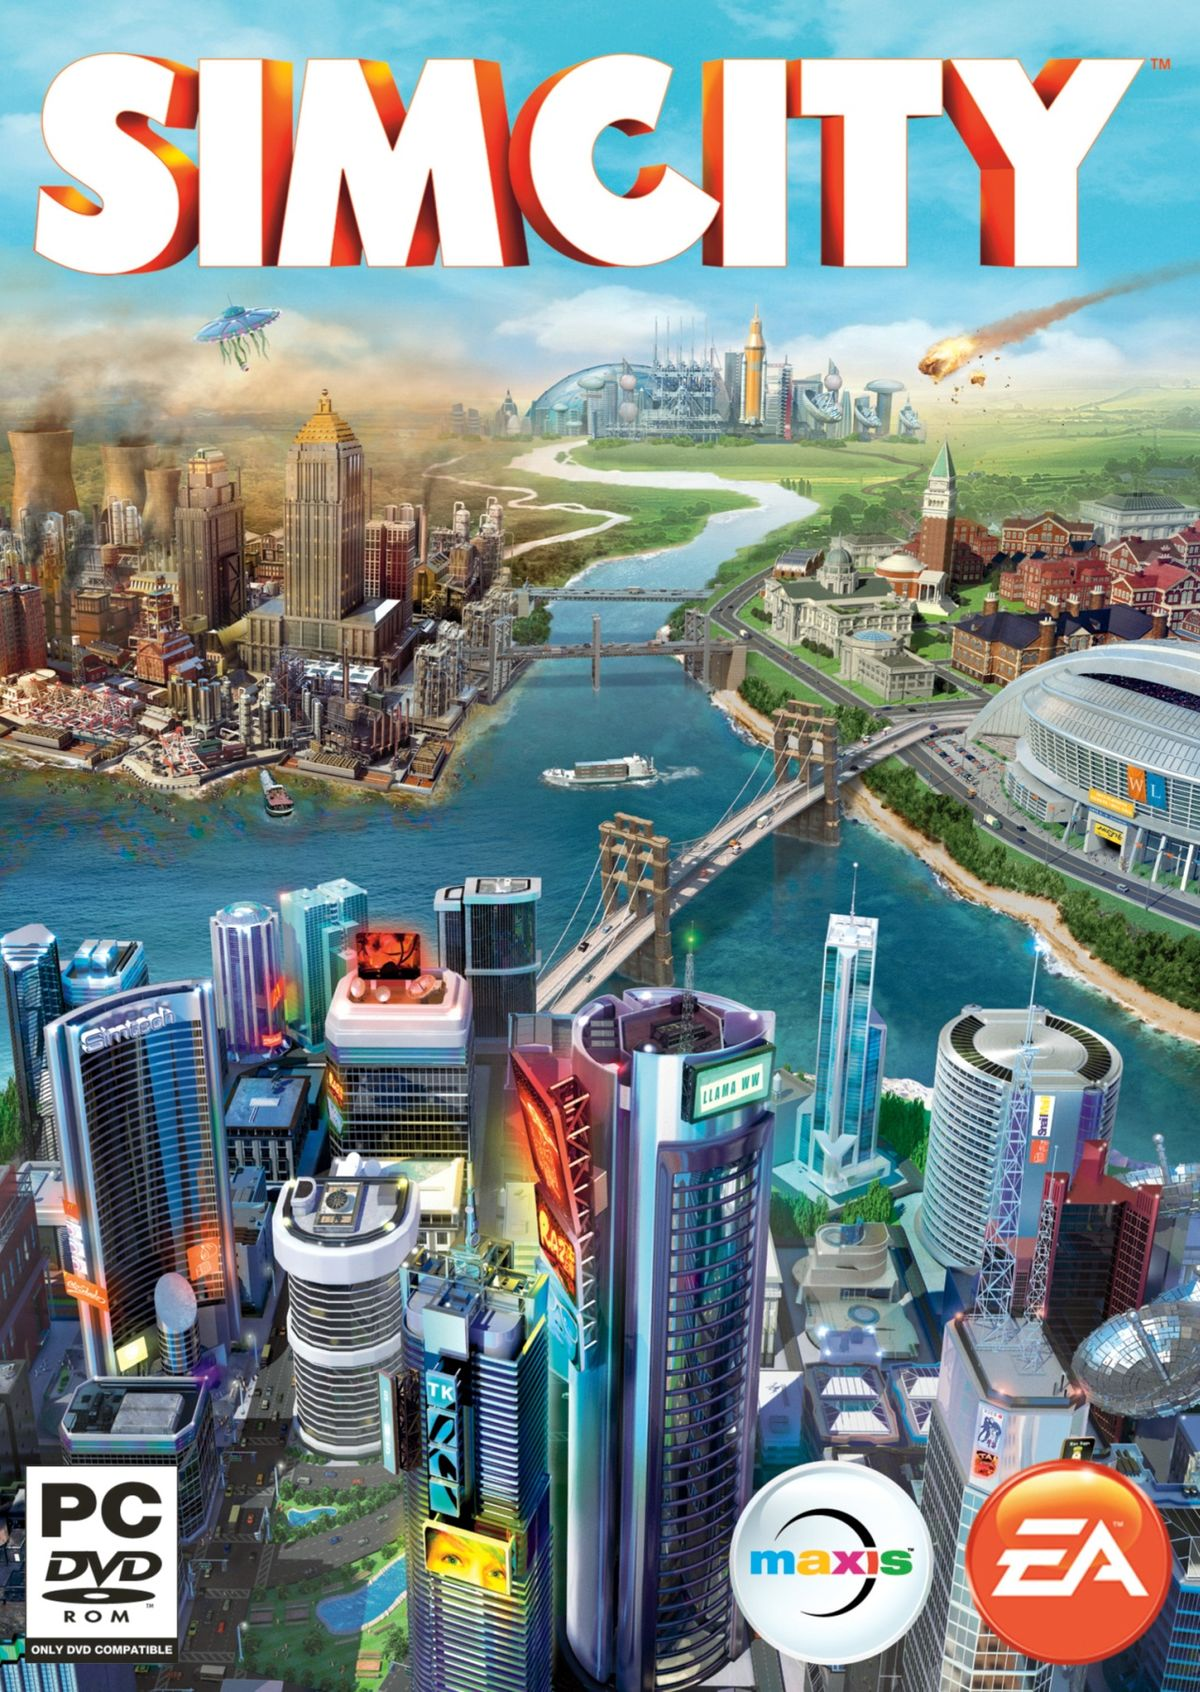 Digital download after buying cd? Simcity (2013) technical help.